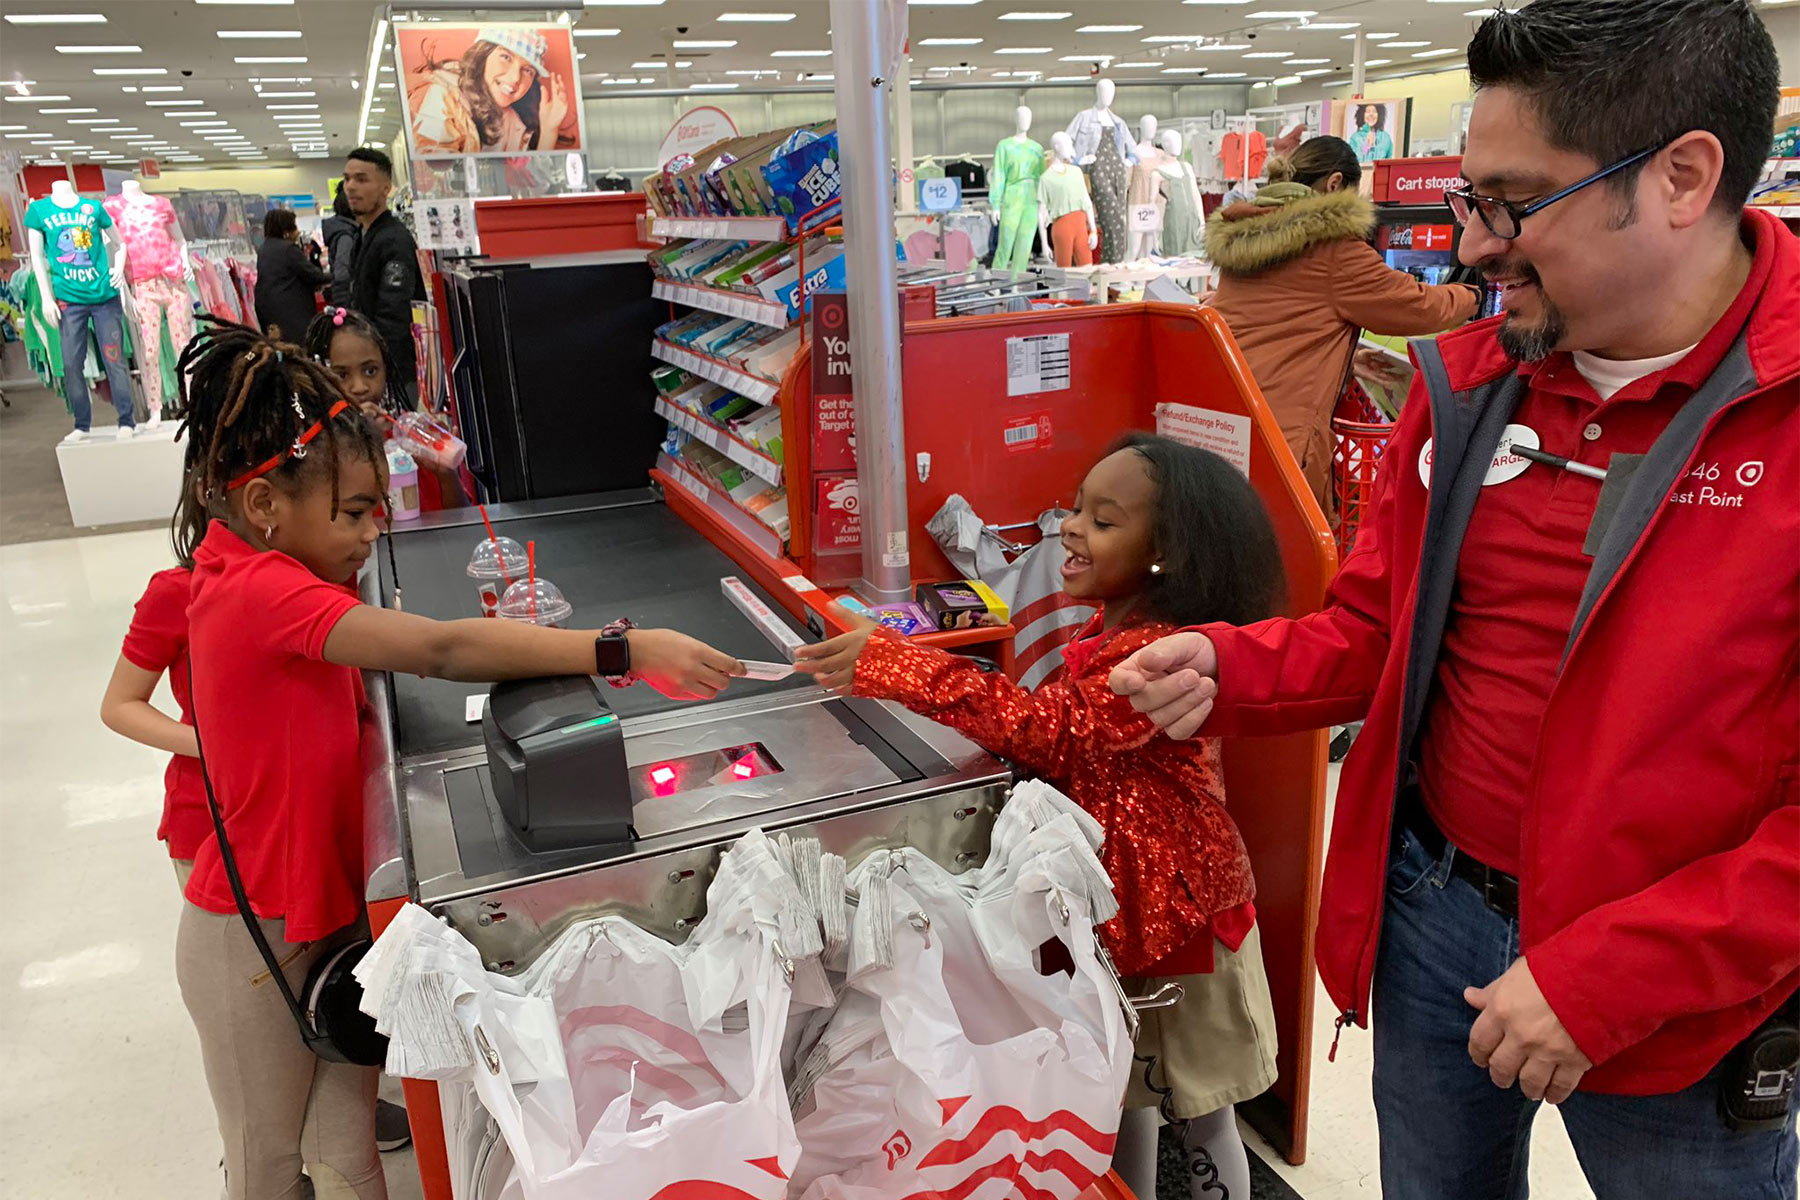 8-year-old Throws Target-themed Birthday Party